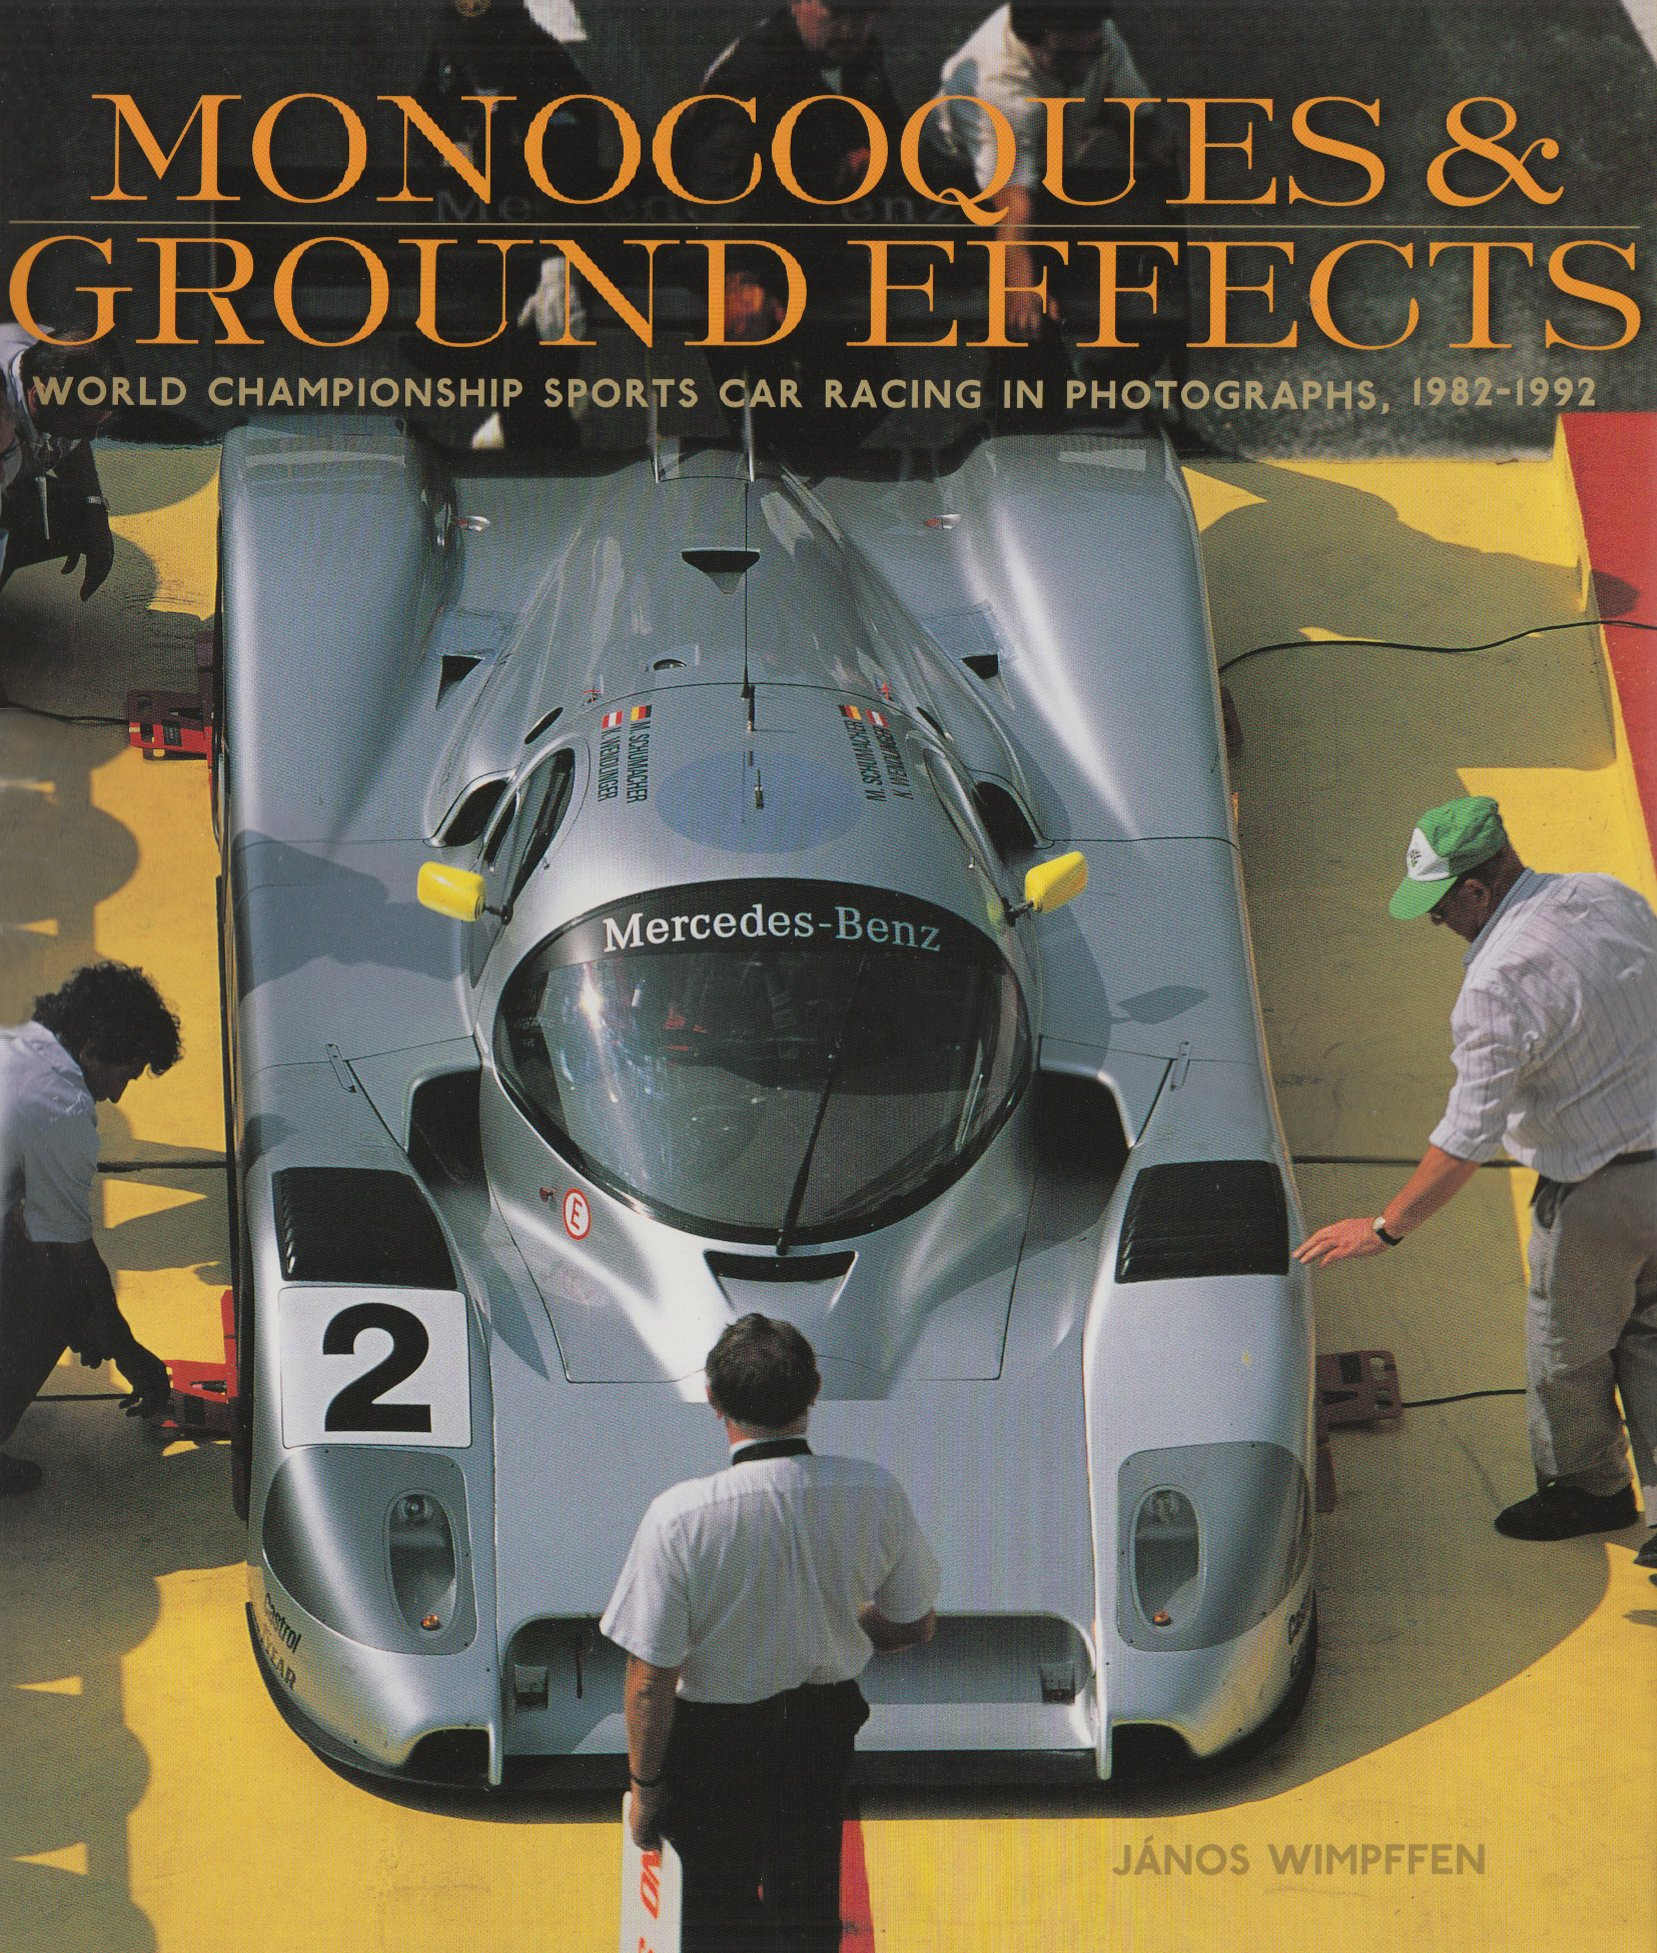 Download Monocoques & Ground Effects: World Championship Sports Car Racing in Photographs, 1982-1992 PDF